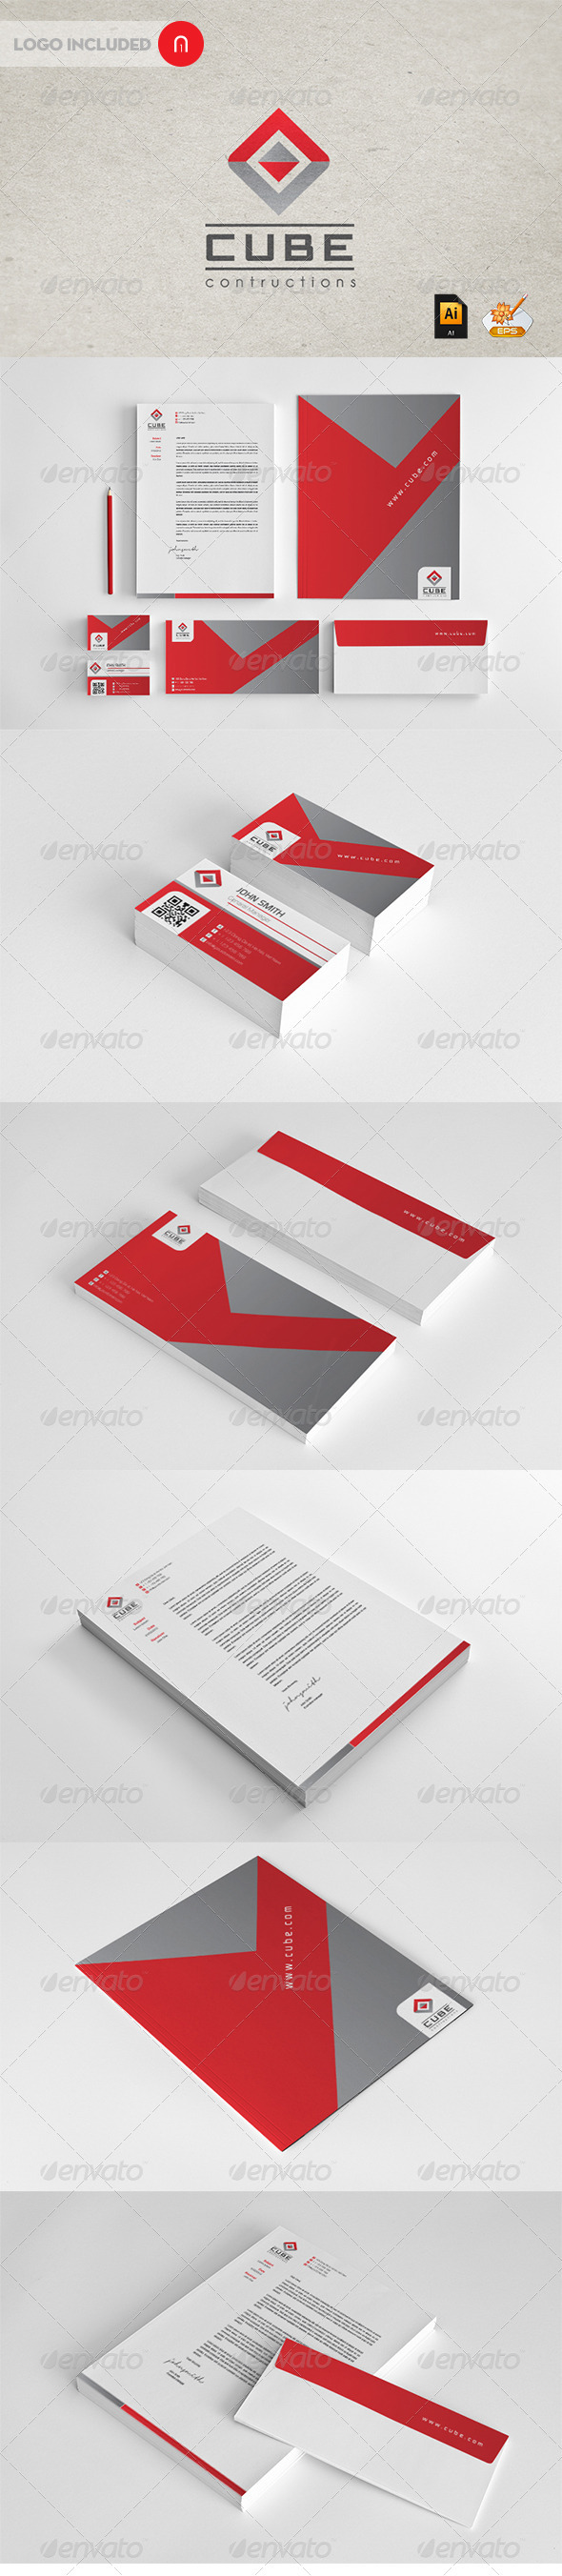 Stationary & Identity - Cube contructions - Stationery Print Templates